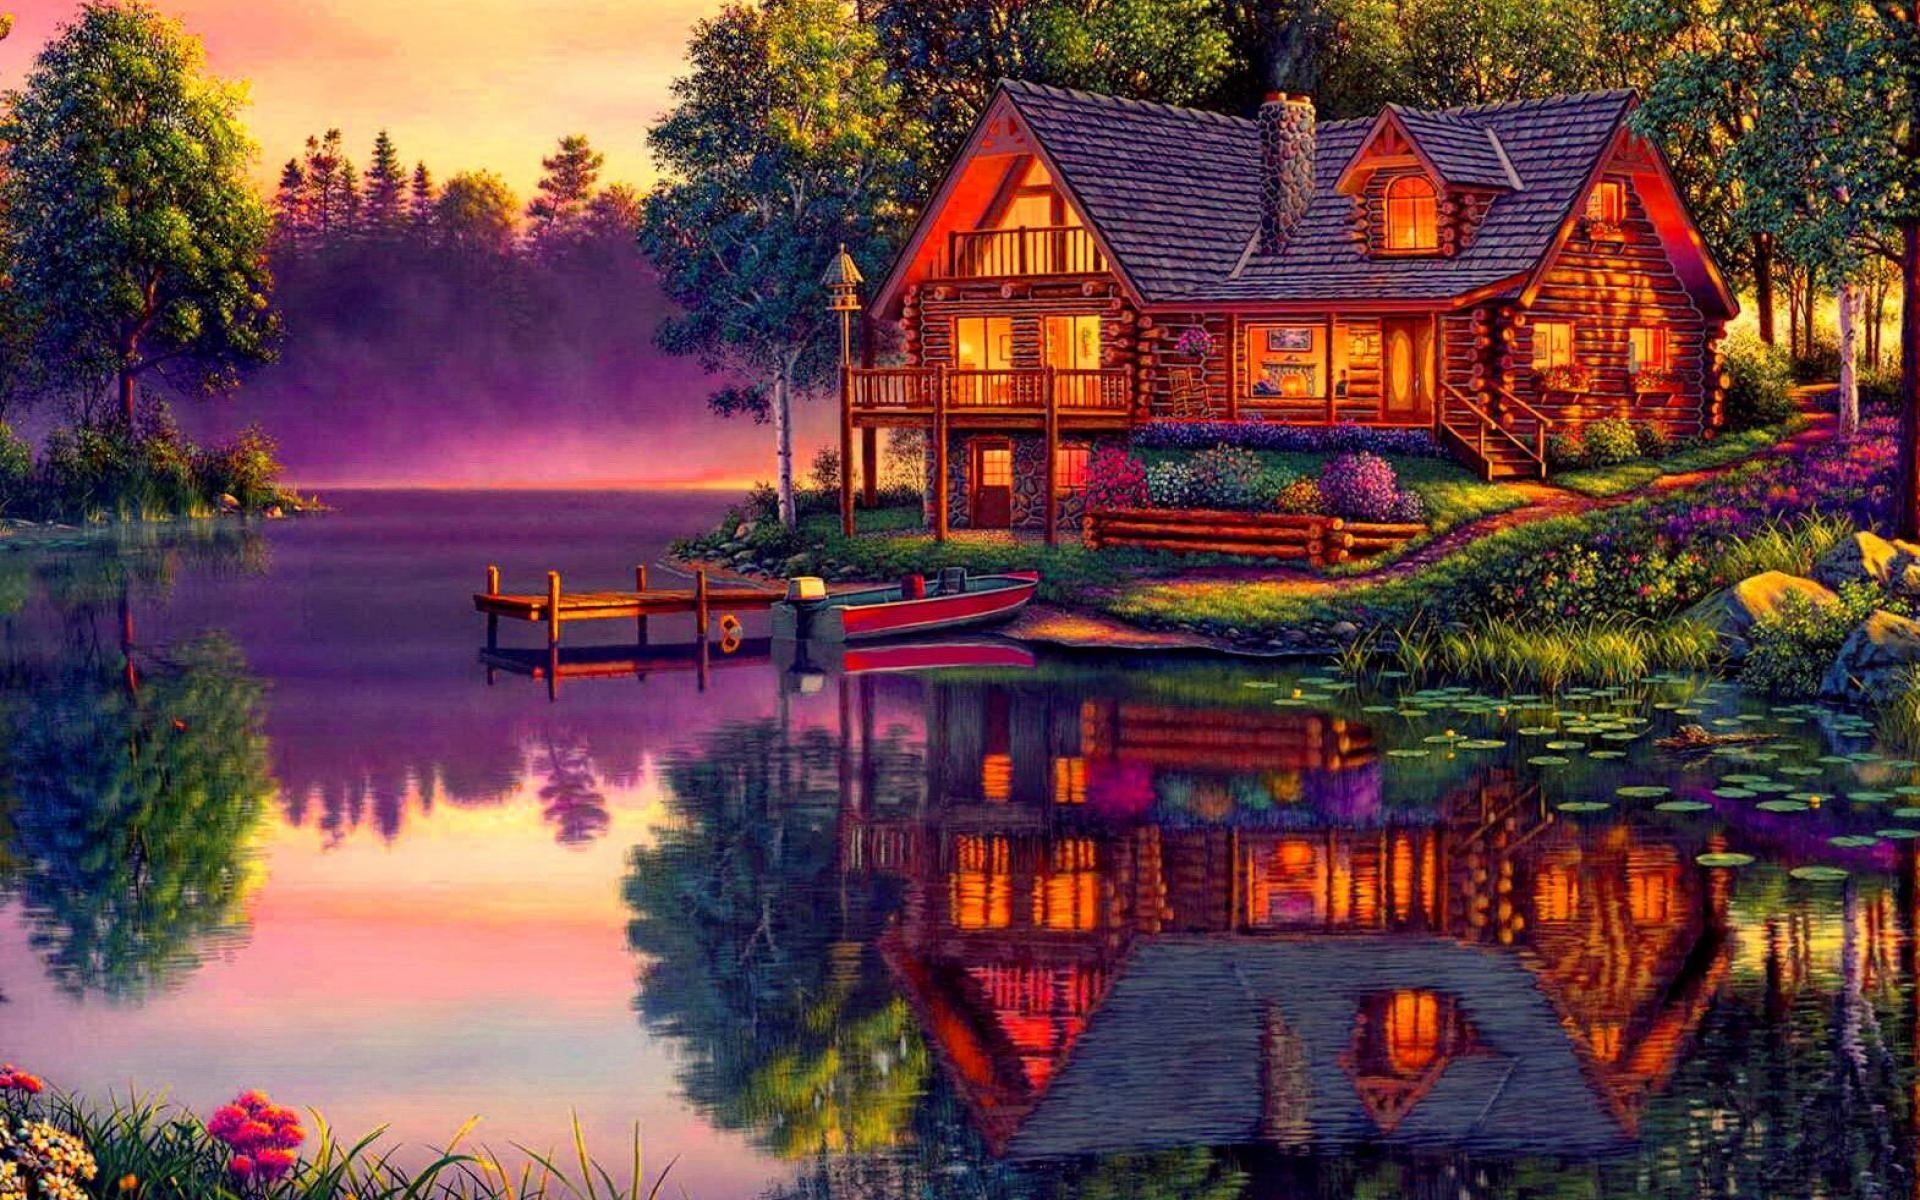 Artistic - House  Artistic Landscape Lake Cabin Dusk Boat Tree Reflection Wallpaper